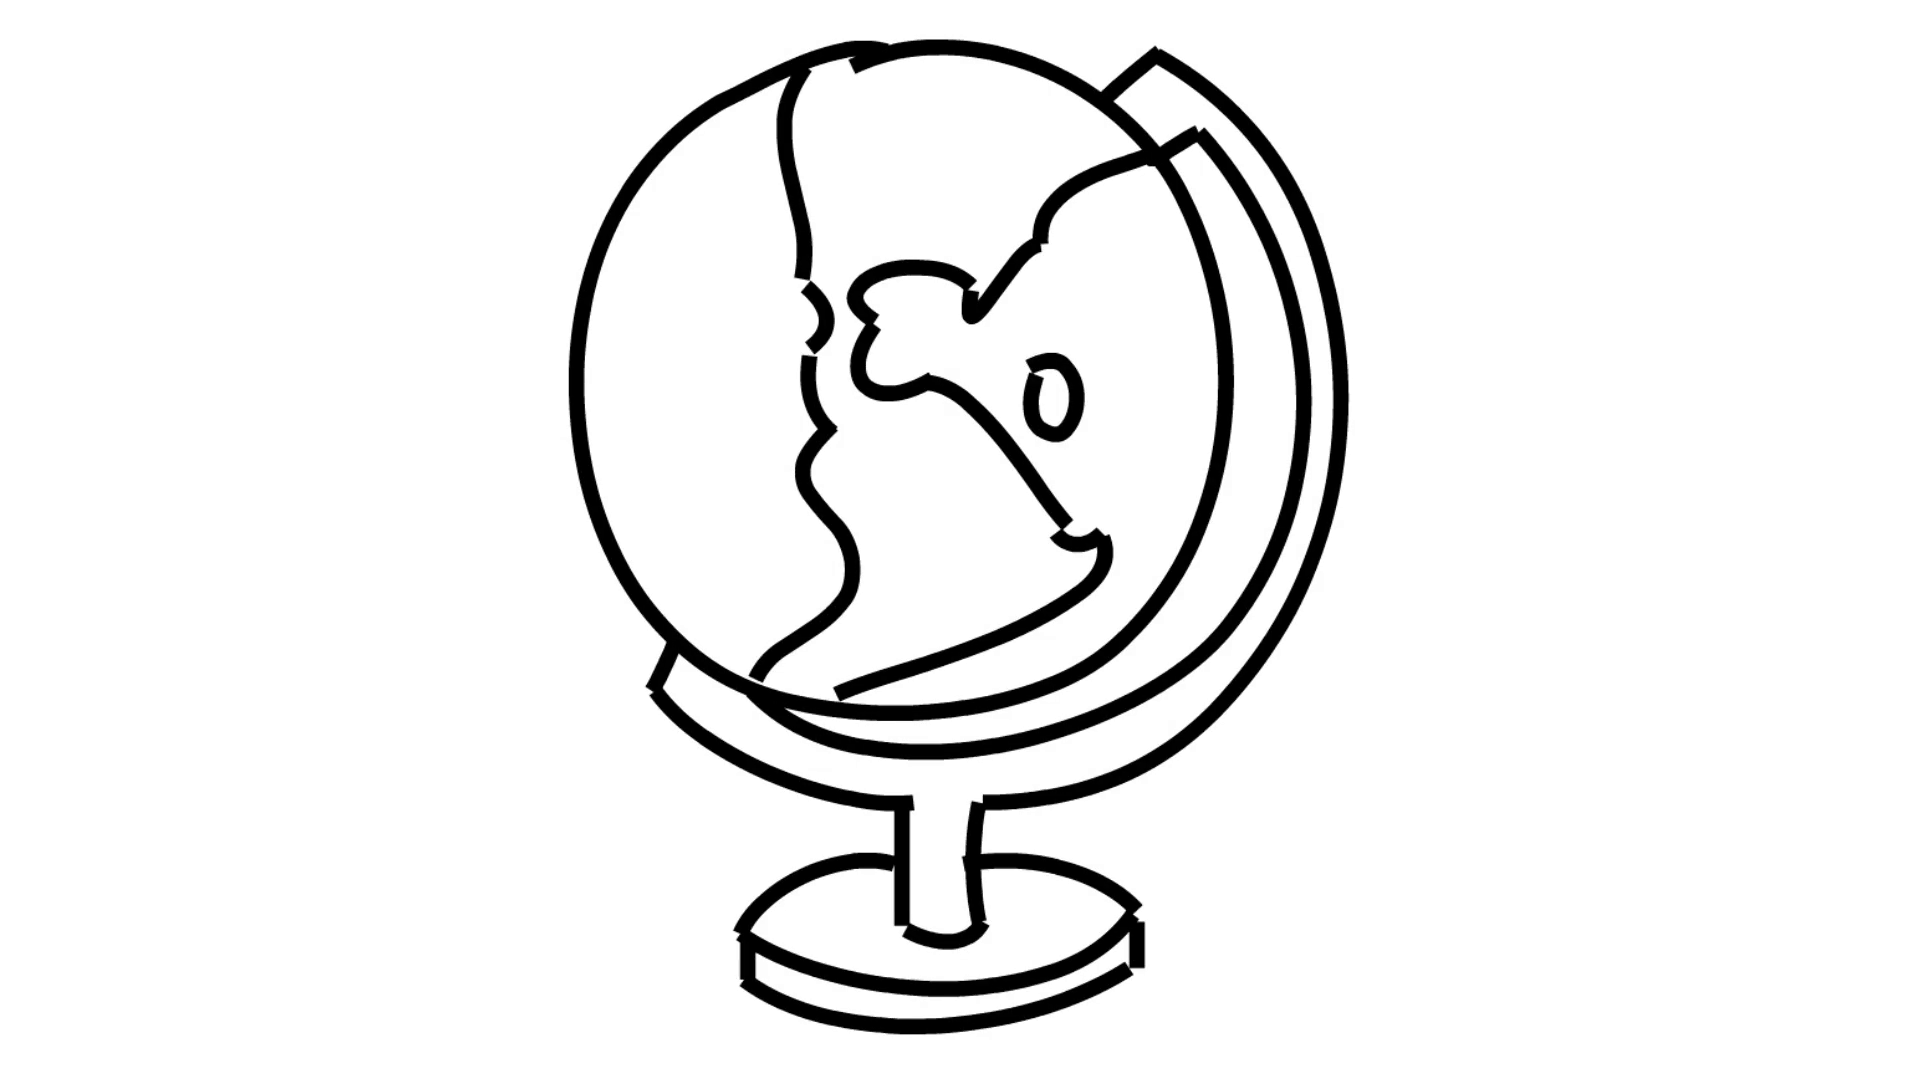 1920x1080 Drawn Globe Transparent Background